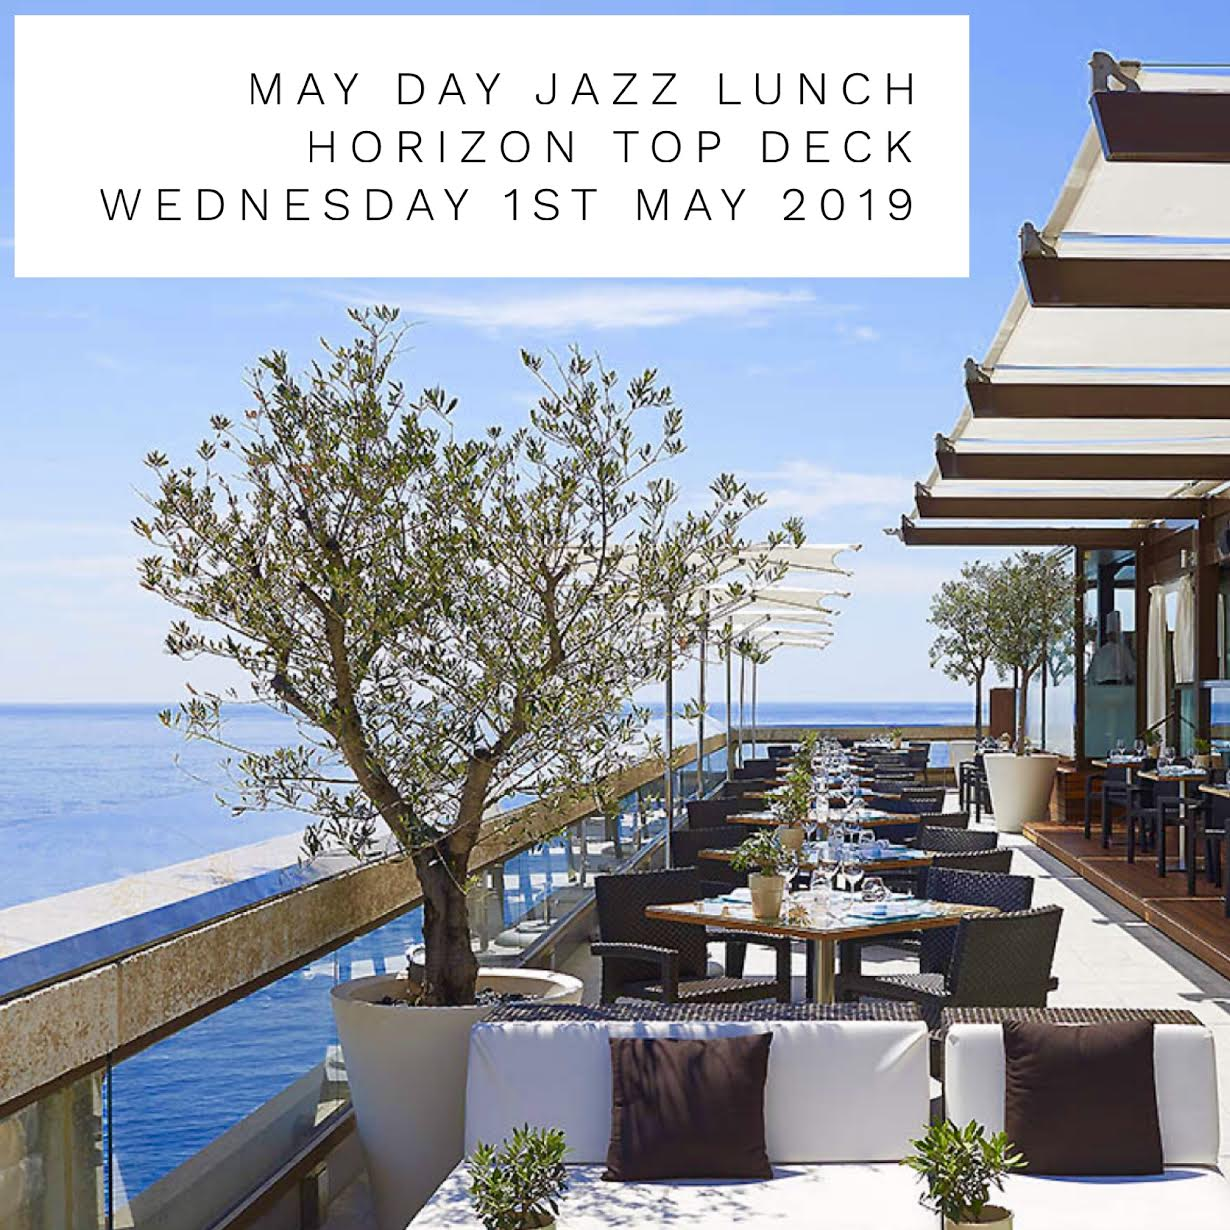 May Day Gourmet Jazz And Wine Lunch Horizon Top Deck Private Dining Fairmont Monte Carlo